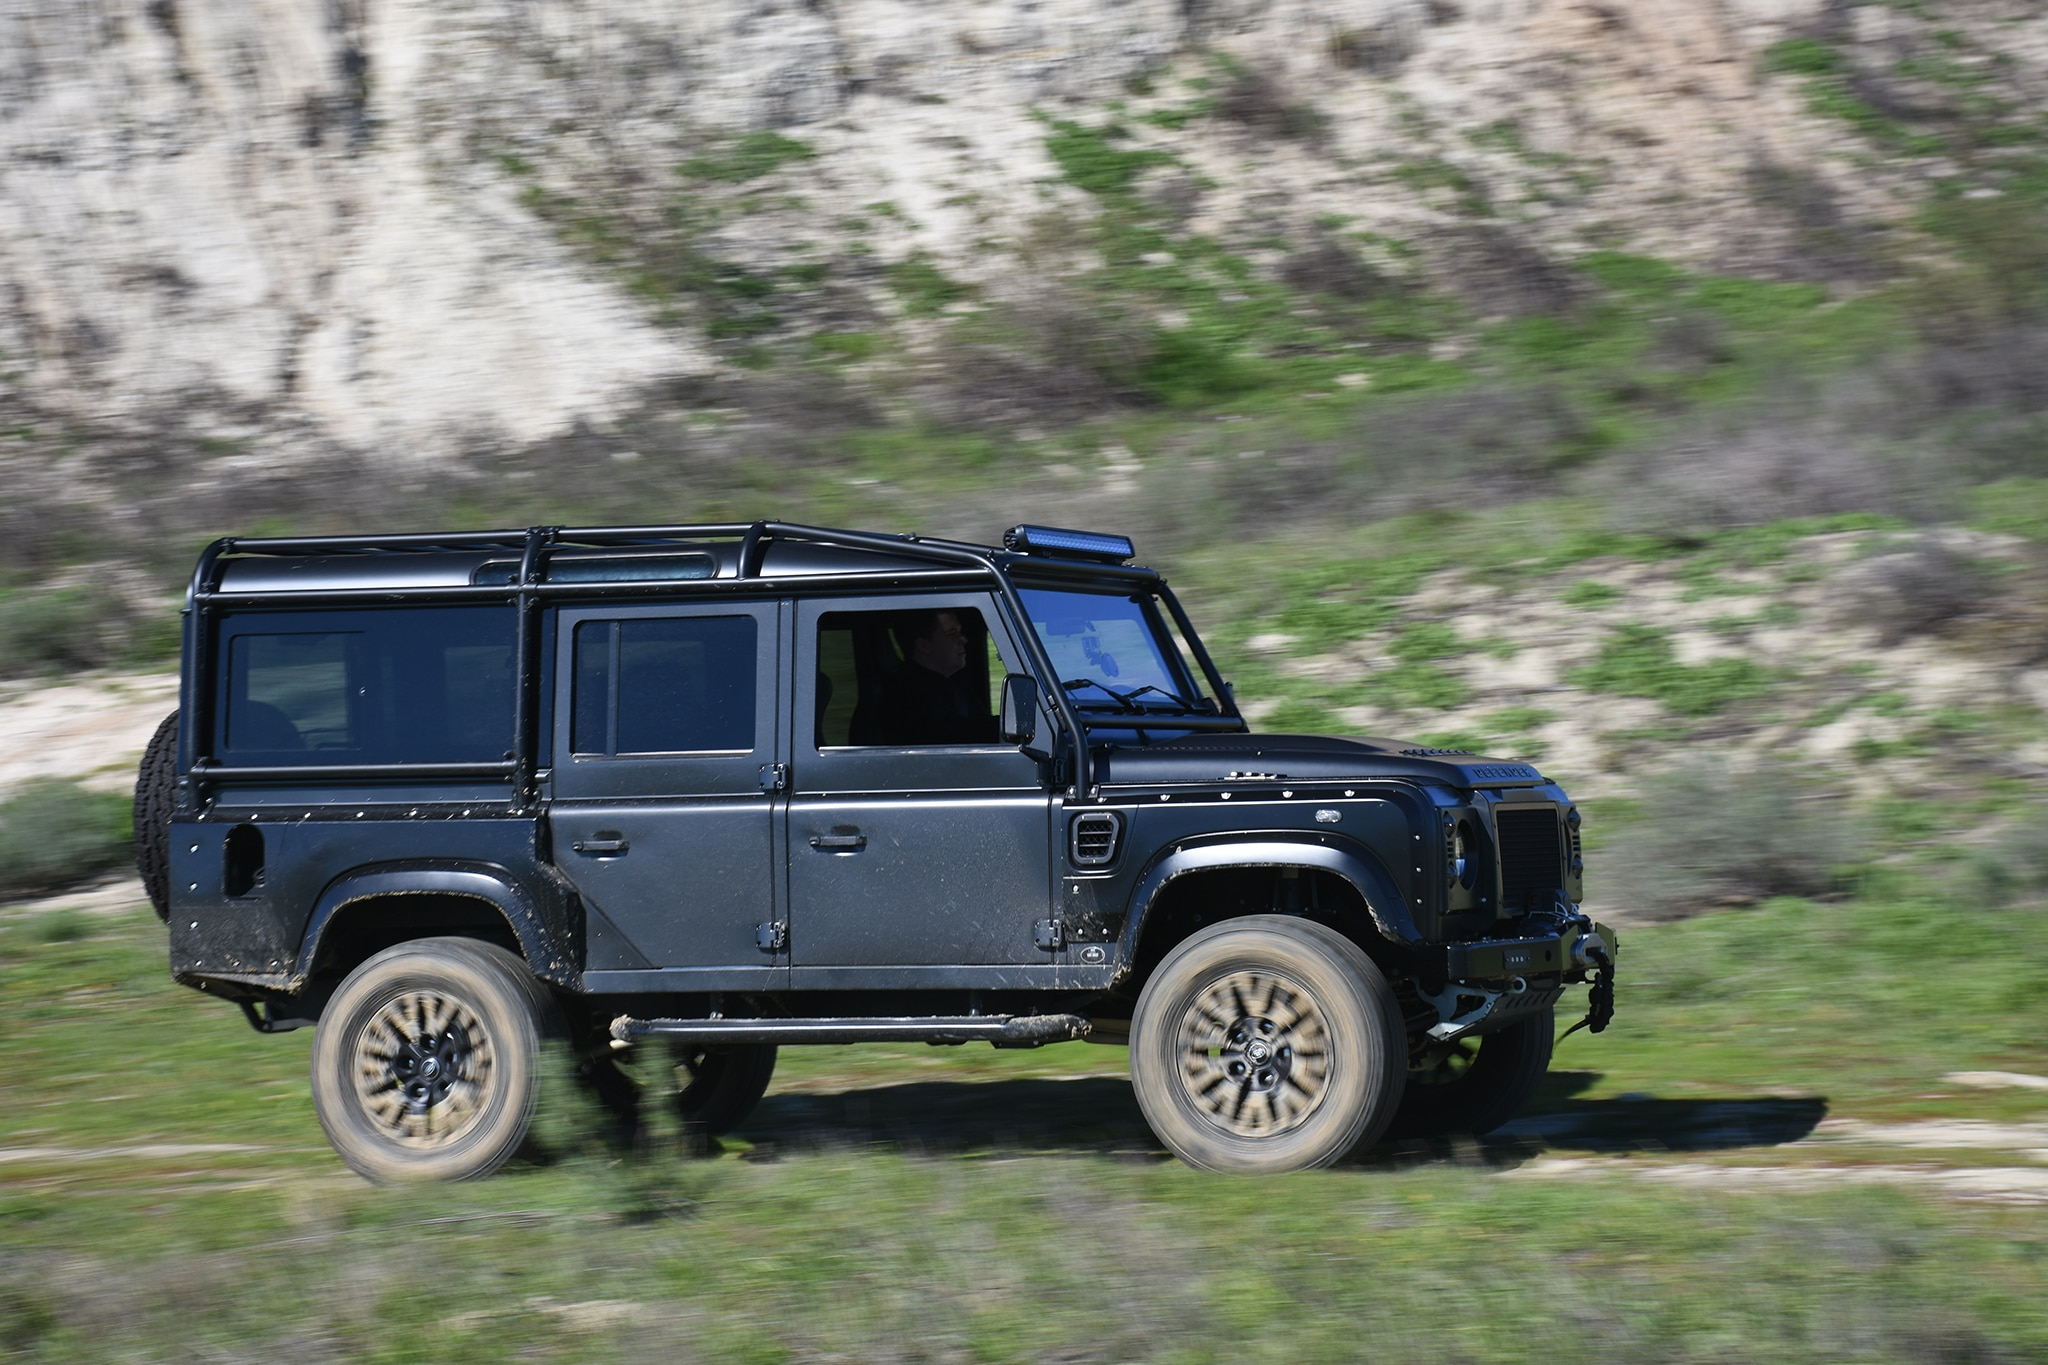 East Coast Defender 90 and 110 First Drive Review